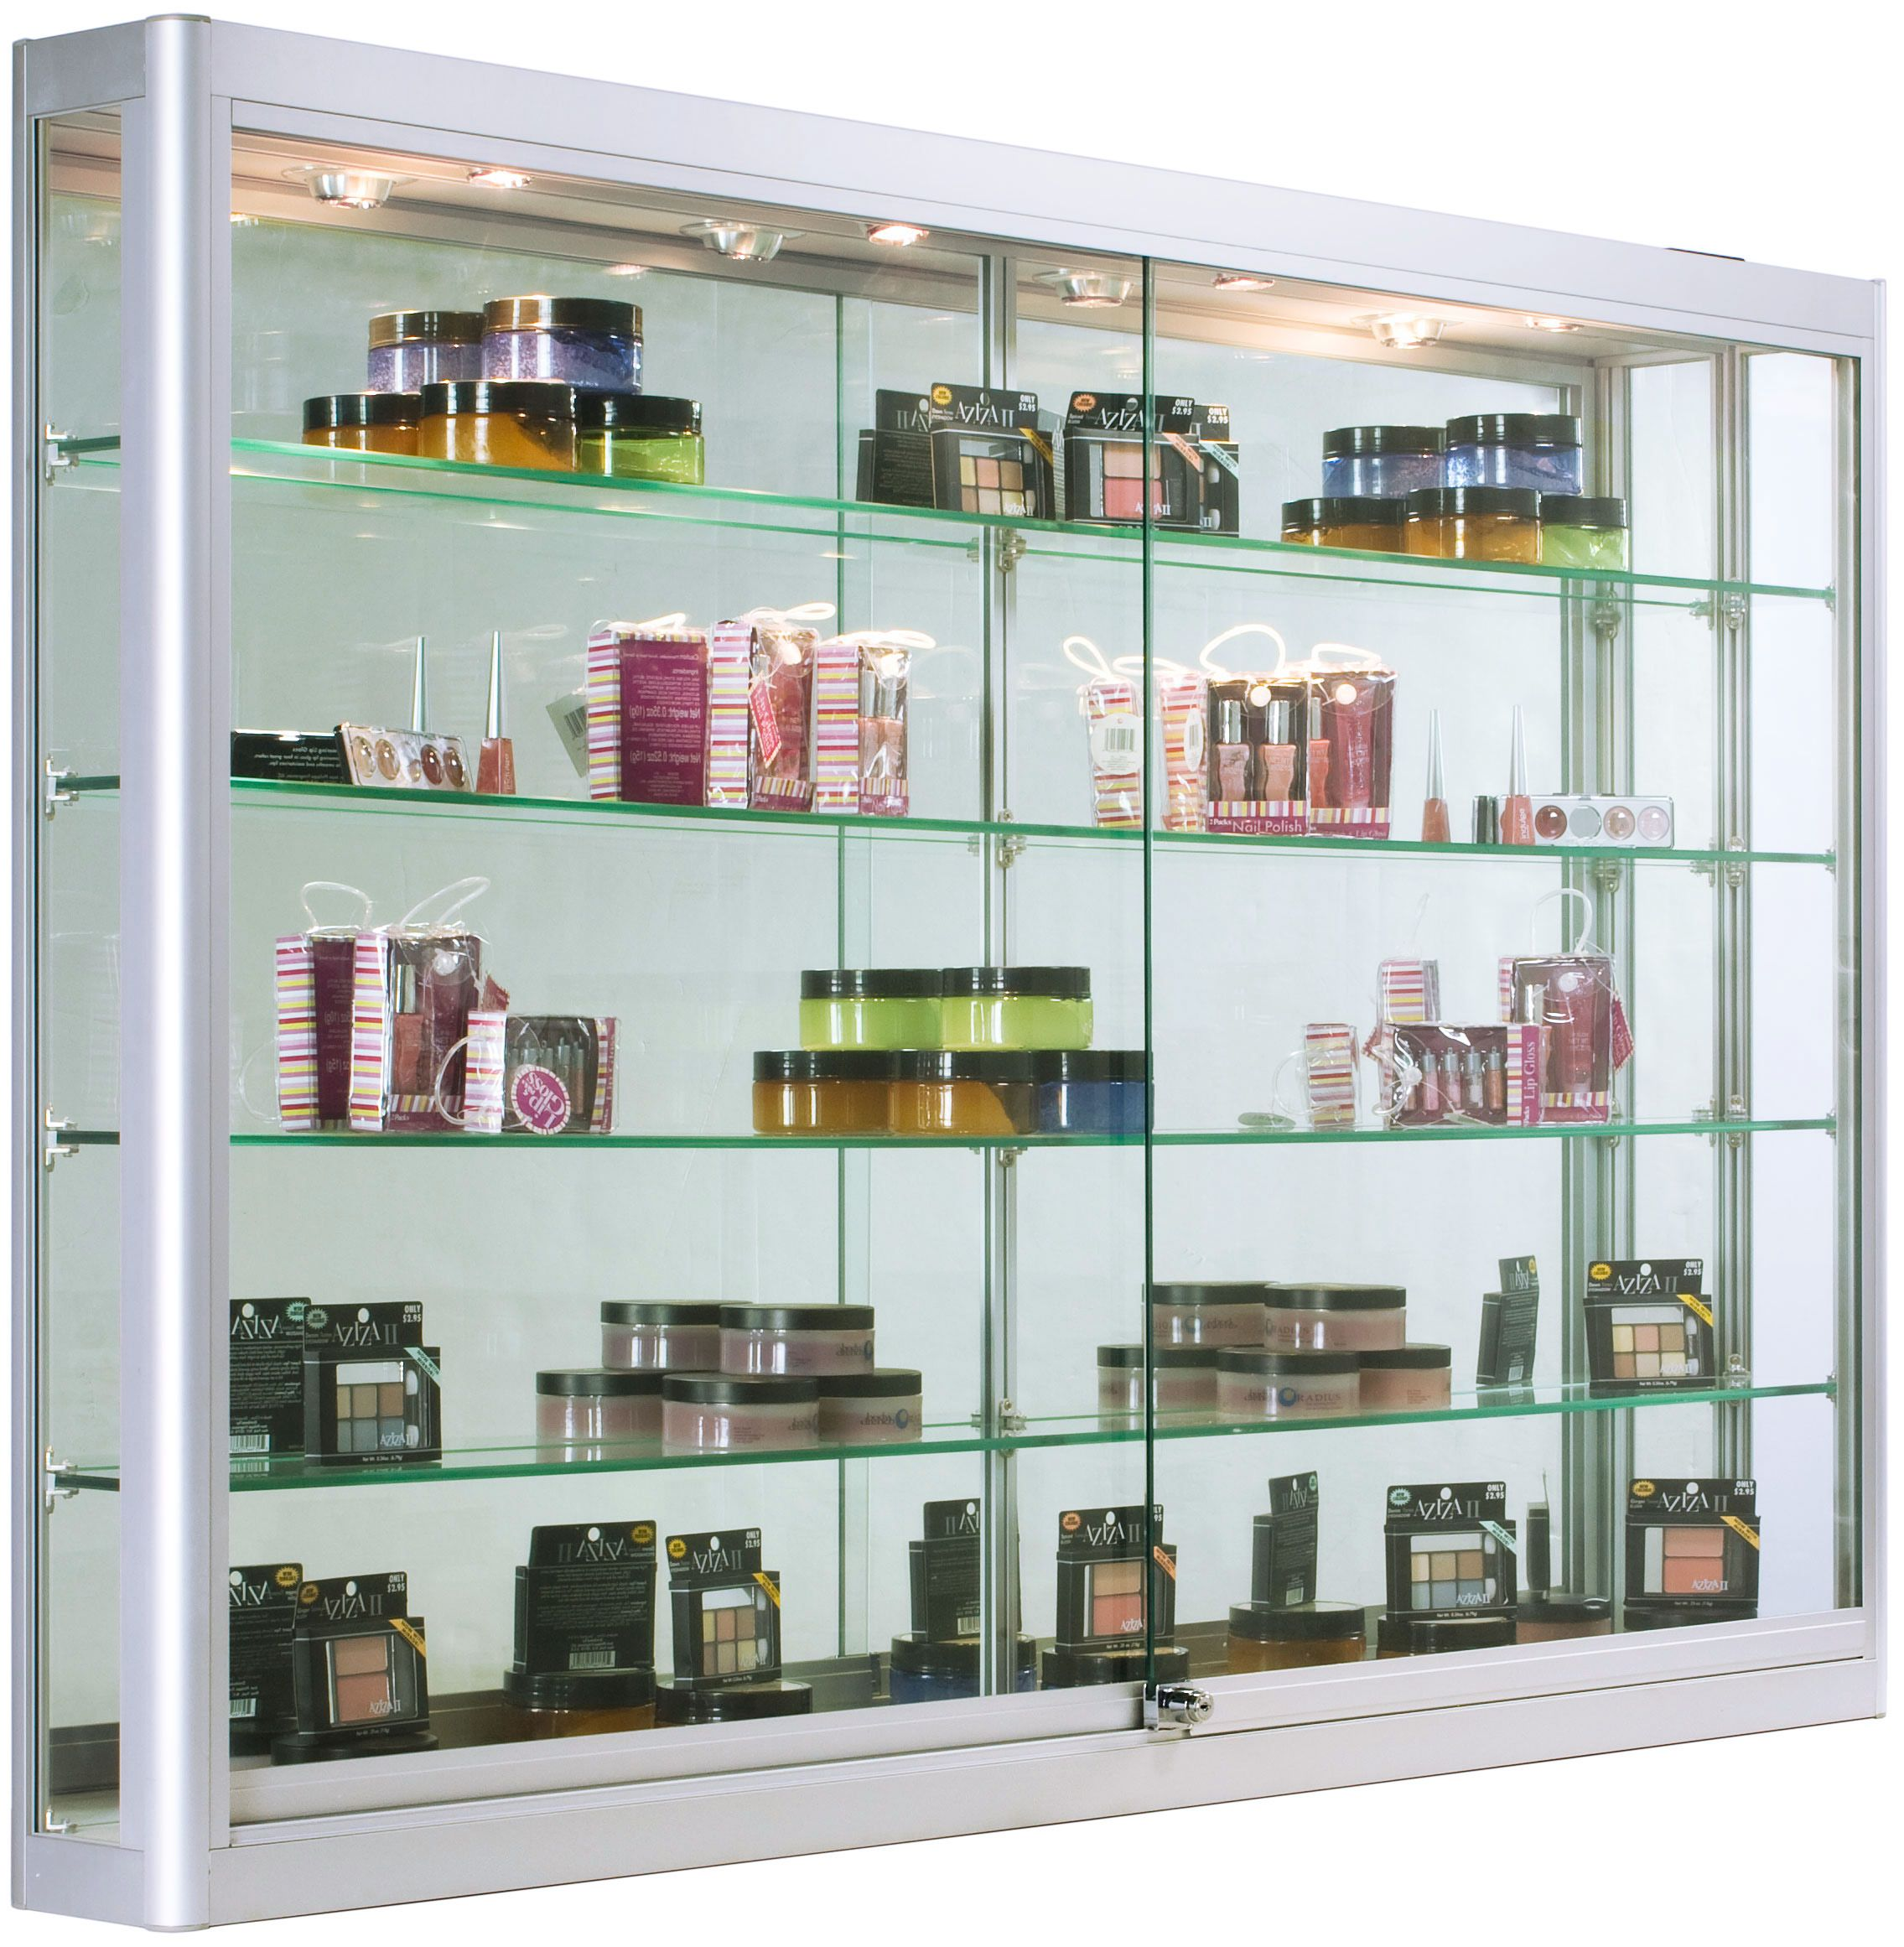 5ft Wall Mounted Display Case W 4 Top Led Lights Mirror Back Locking Silver Glass Cabinets Display Wall Mounted Display Case Wall Mounted Display Cabinets Glass display case with lights